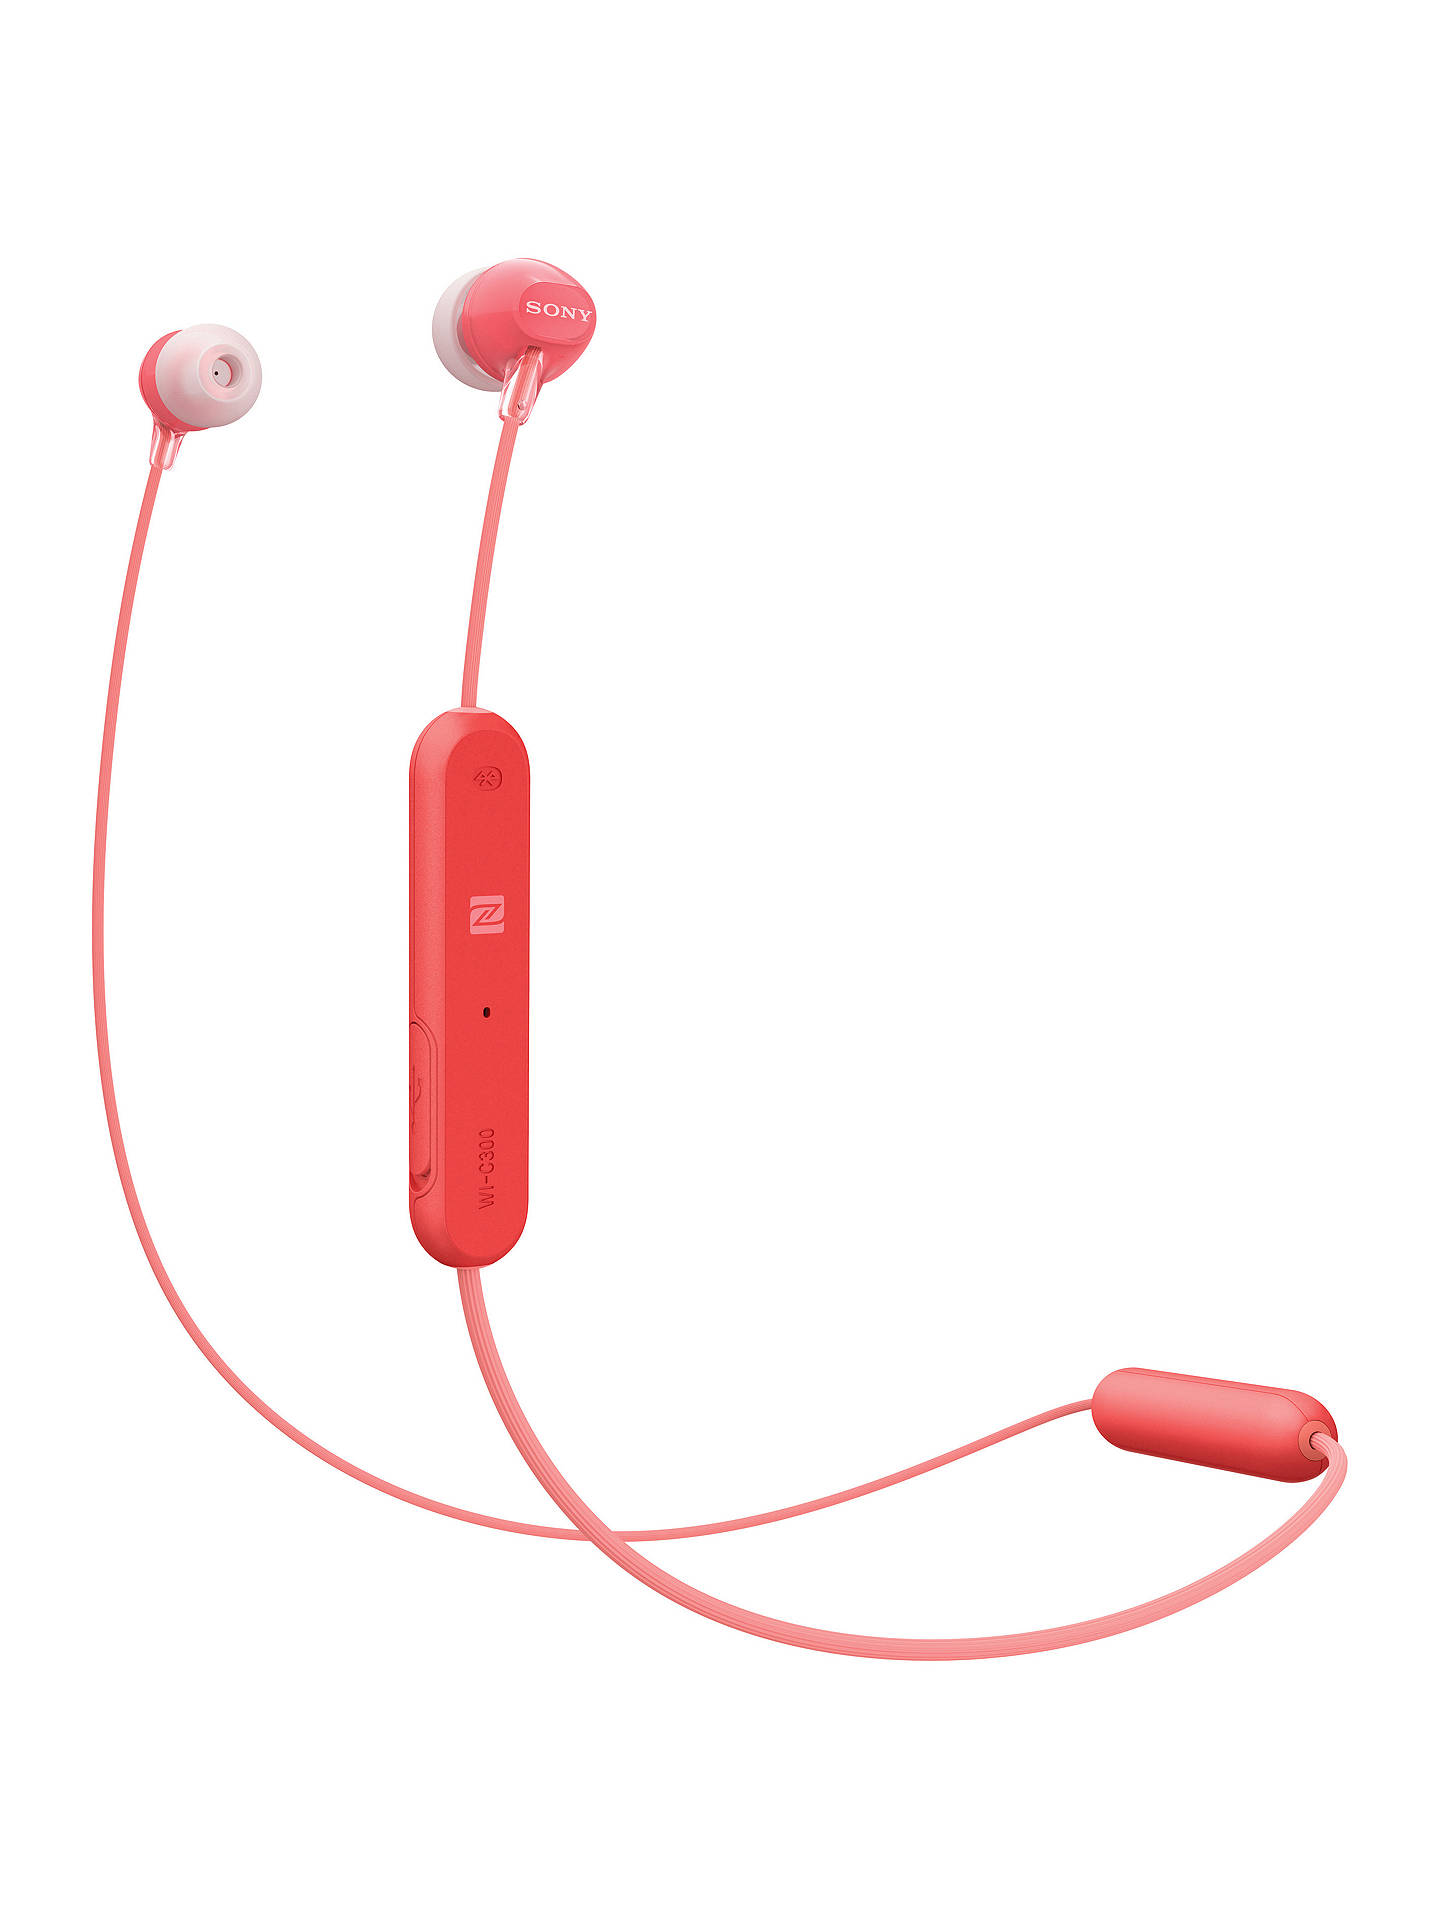 BuySony WI-C300 Bluetooth NFC Wireless In-Ear Headphones with Mic/Remote, Red Online at johnlewis.com